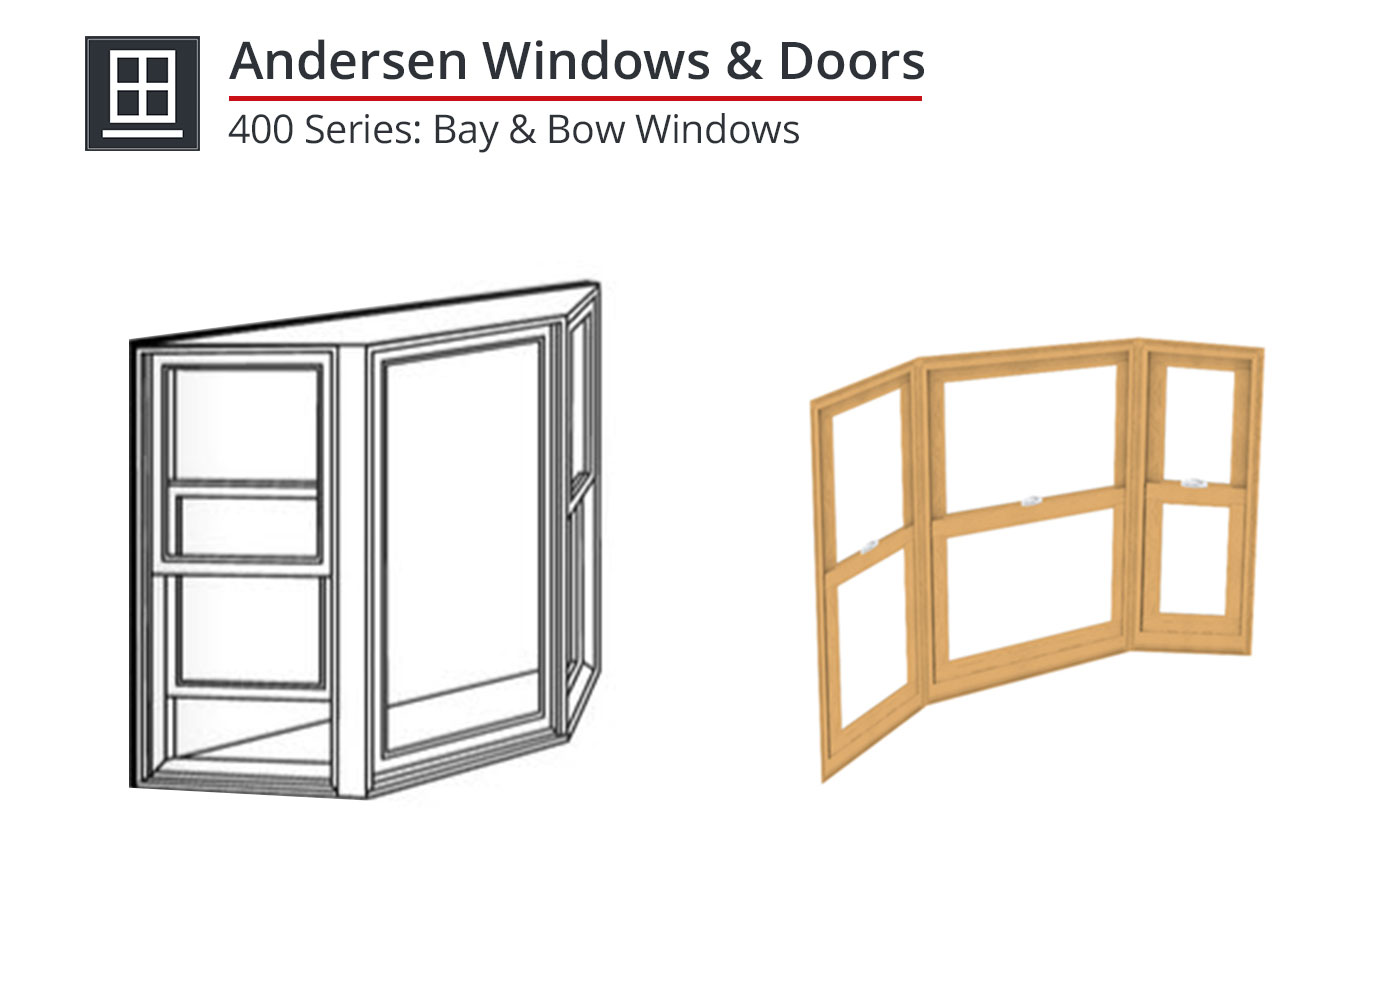 910-036 400 Series: Bay & Bow Windows